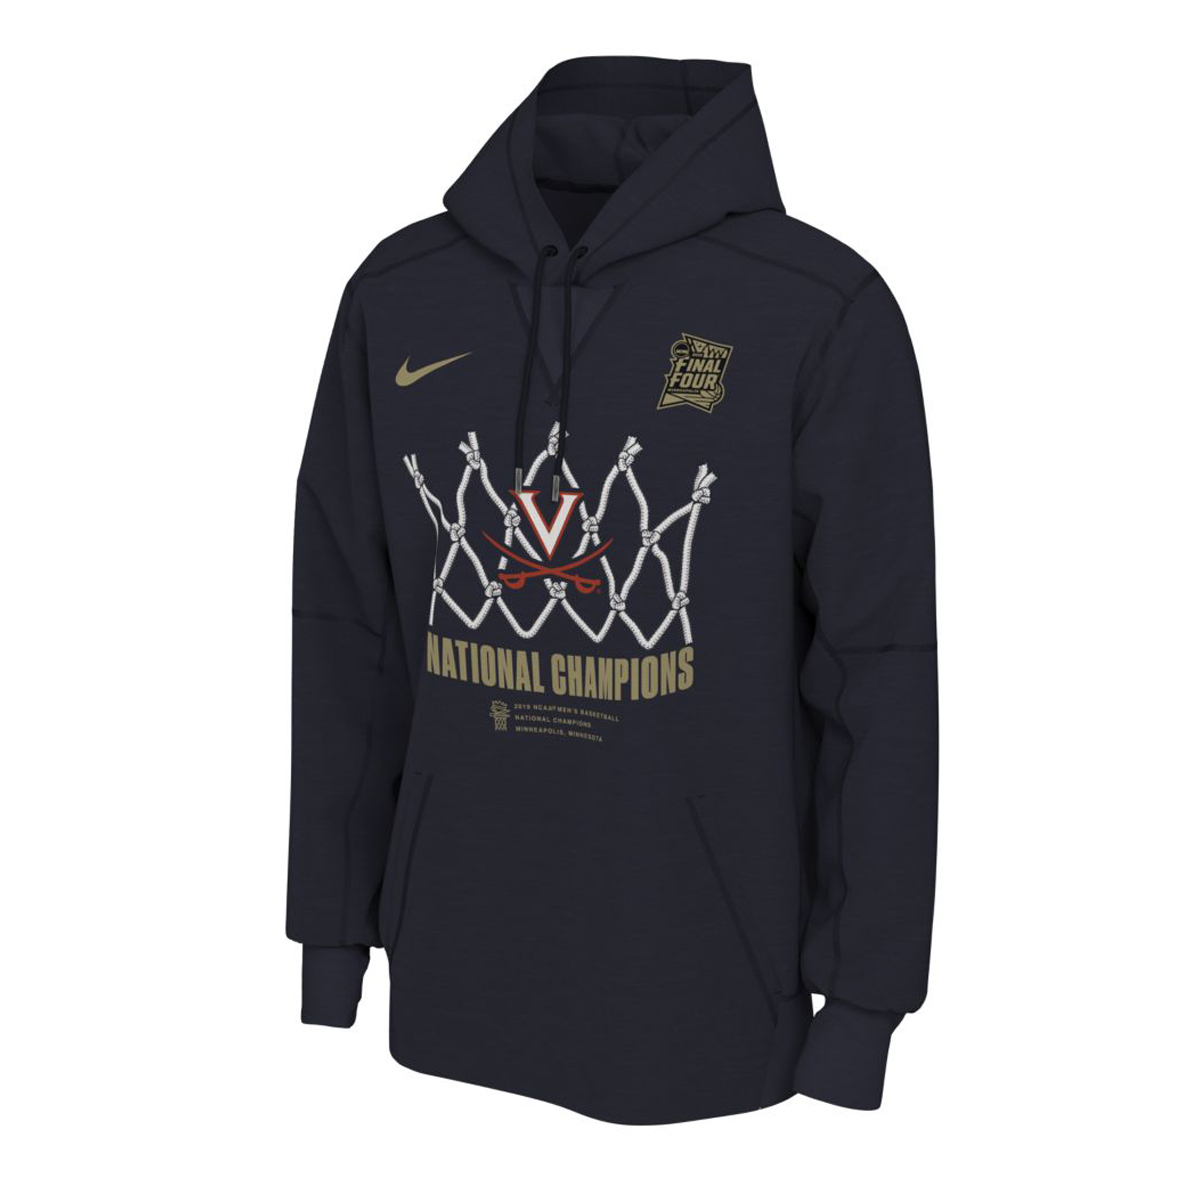 2019 National Champions Locker Room Hoodie